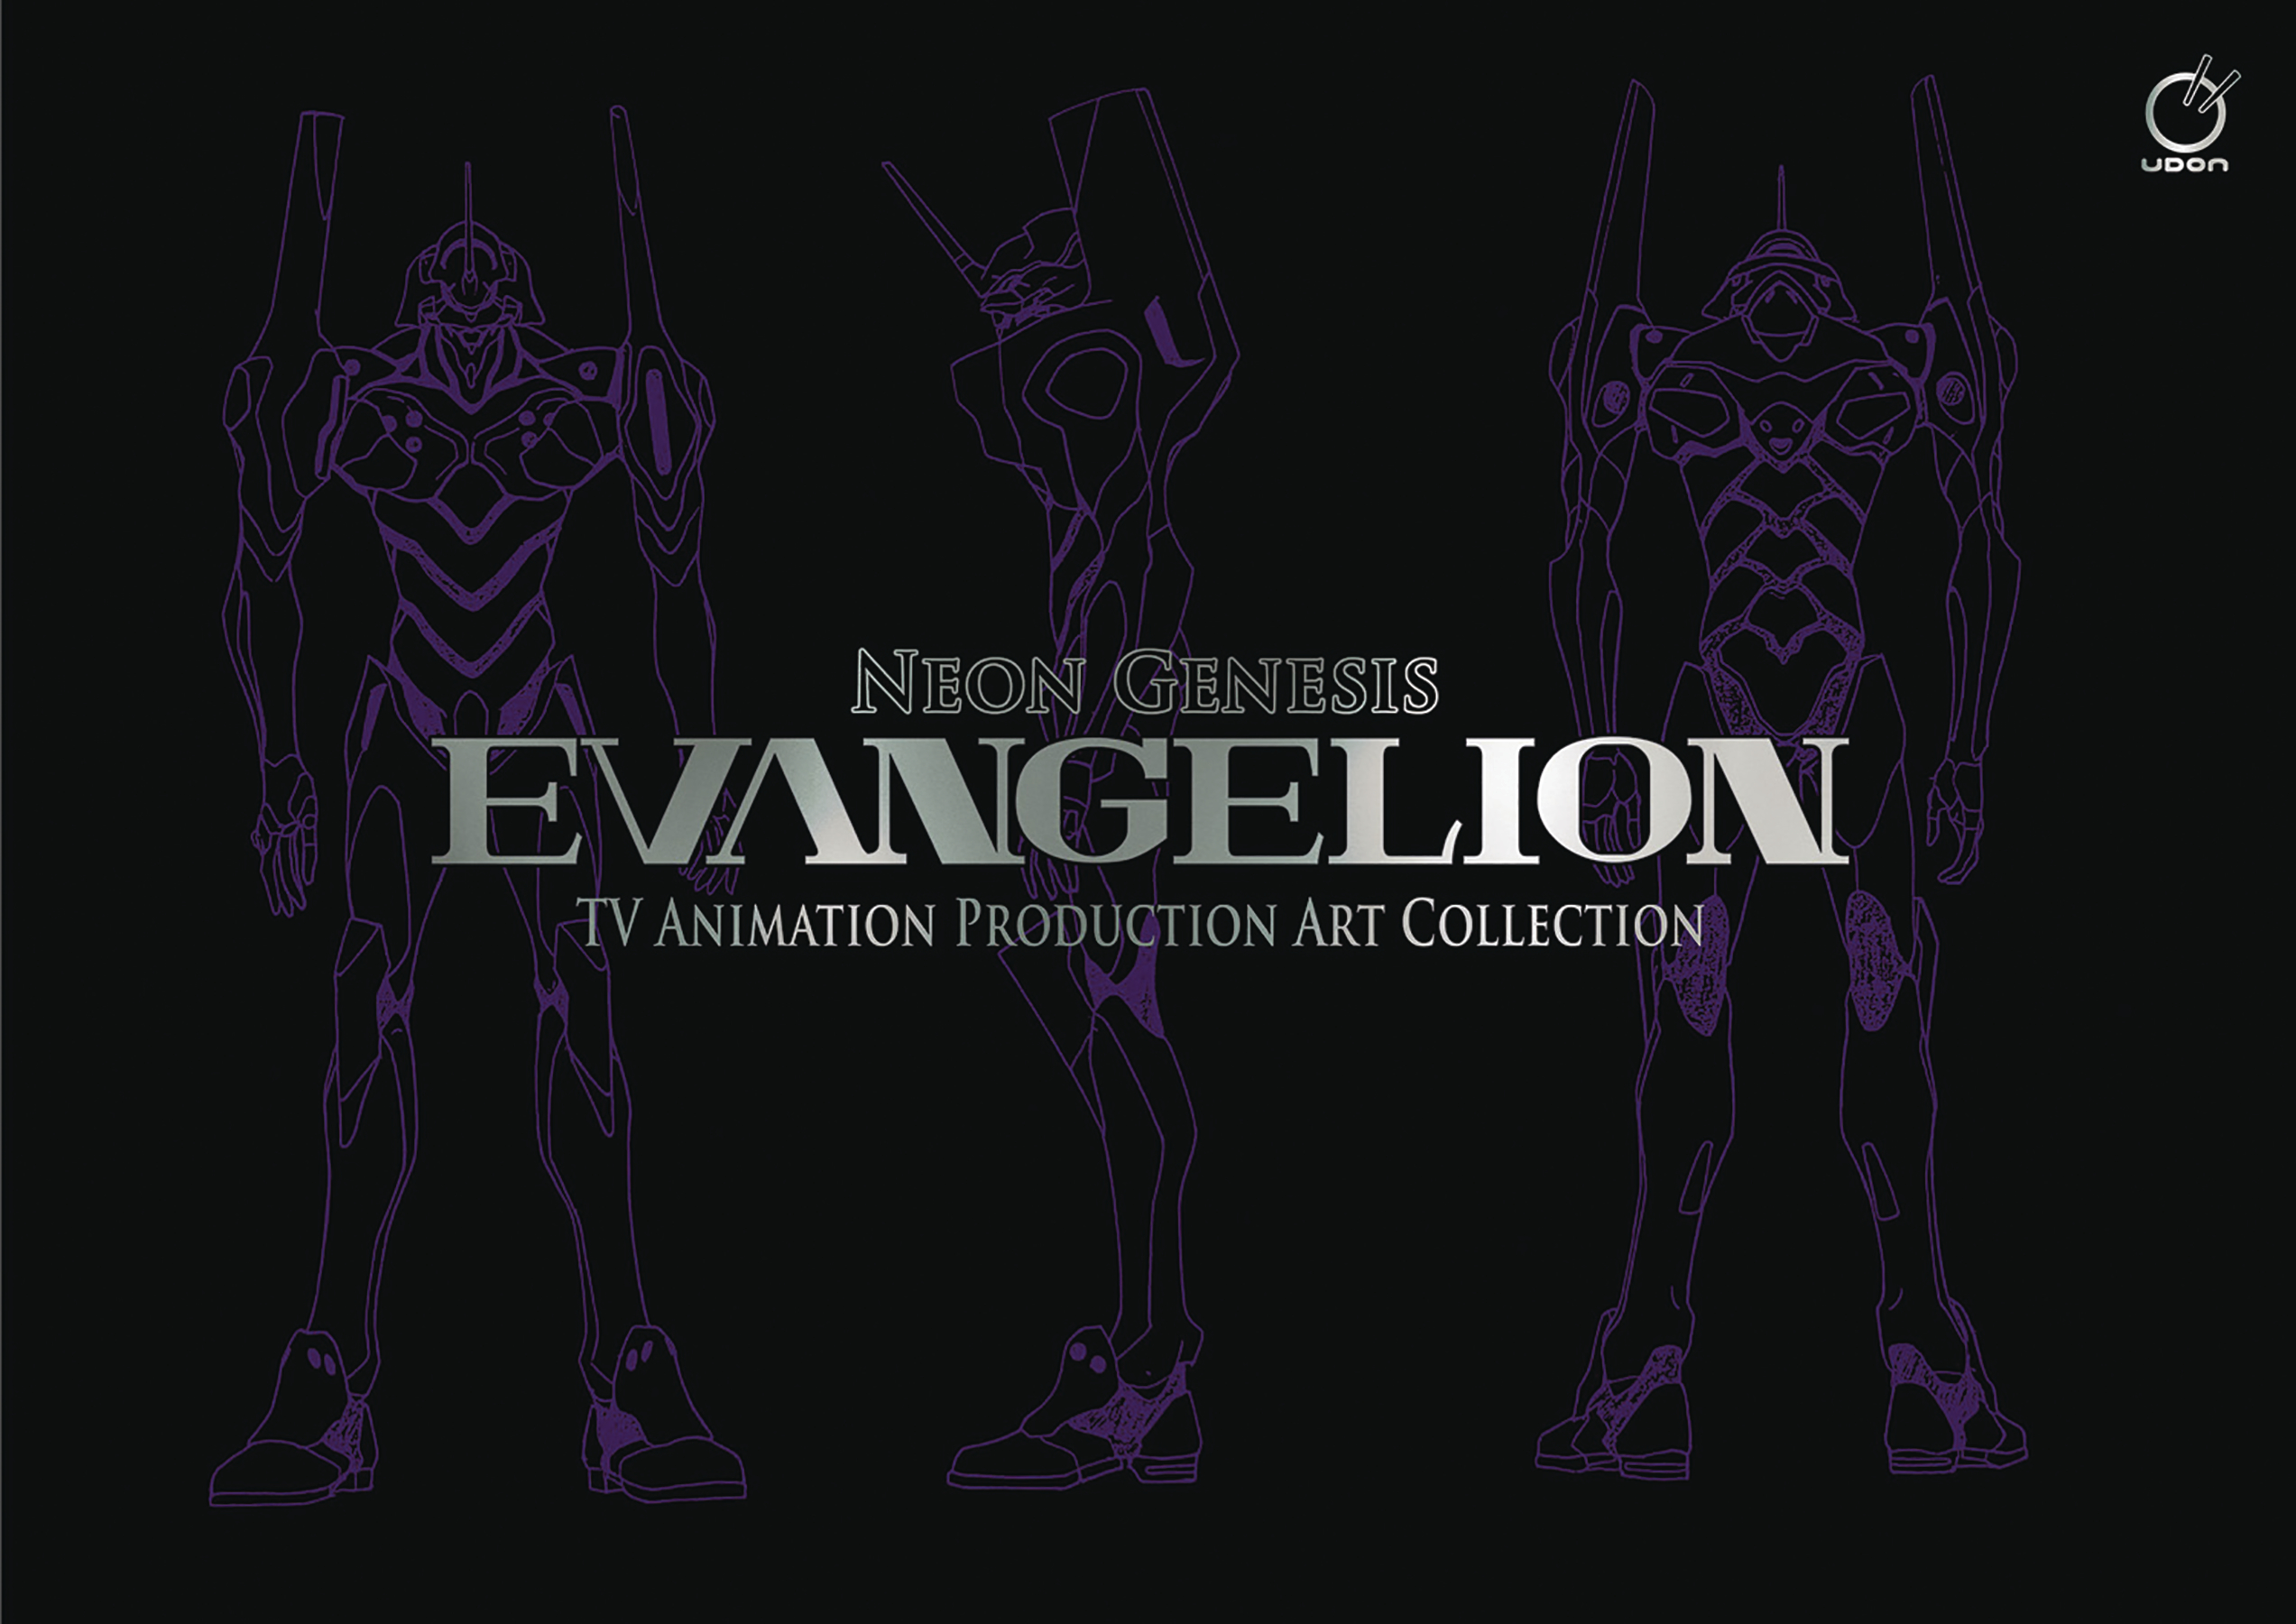 NEON GENESIS EVANGELION HC TV ANIMATION PRODUCTION ART COLL